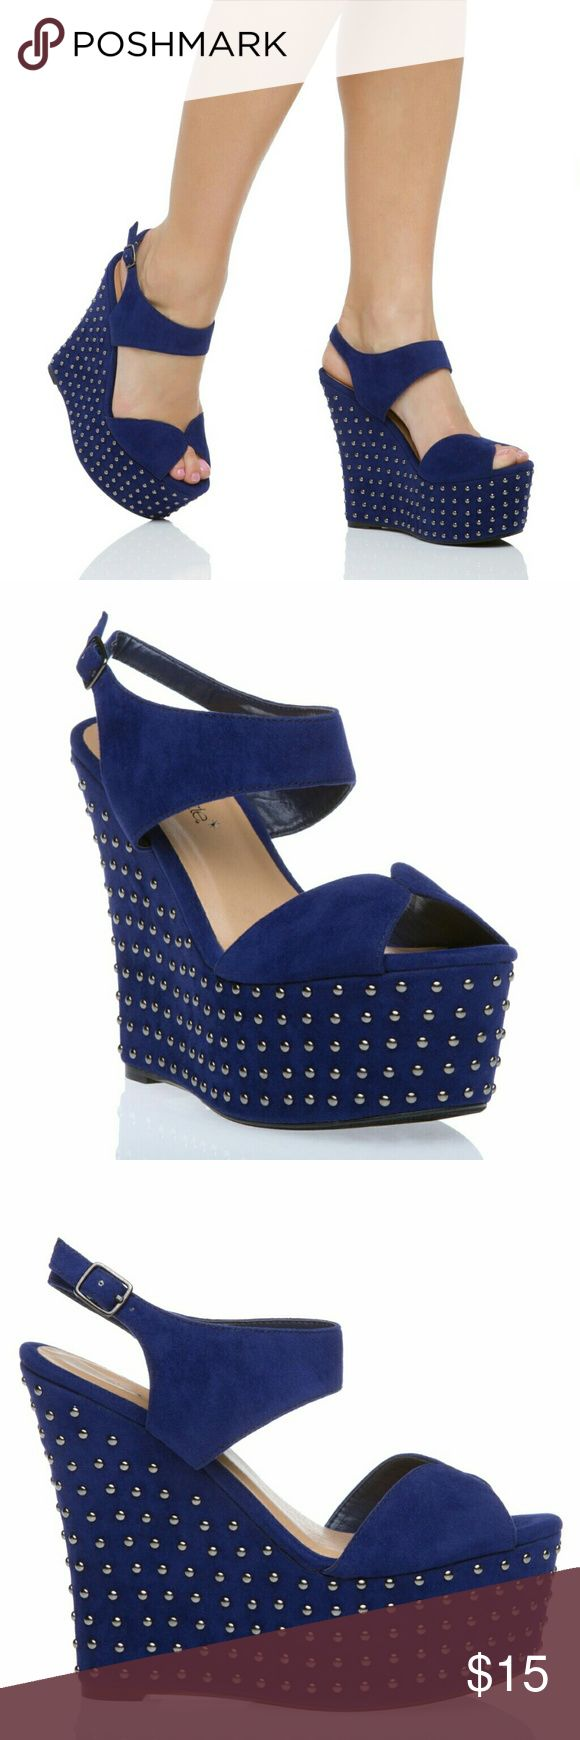 Shoe Dazzle Agata Blue Studded Wedges - SZ 7.5 Shoe Dazzle Agata Collection Blue Studded Wedges in size 7.5. Condition is lightly worn but very good shape. See pictures. Any questions feel free to ask! All reasonable offers accepted. Shoe Dazzle Shoes Wedges